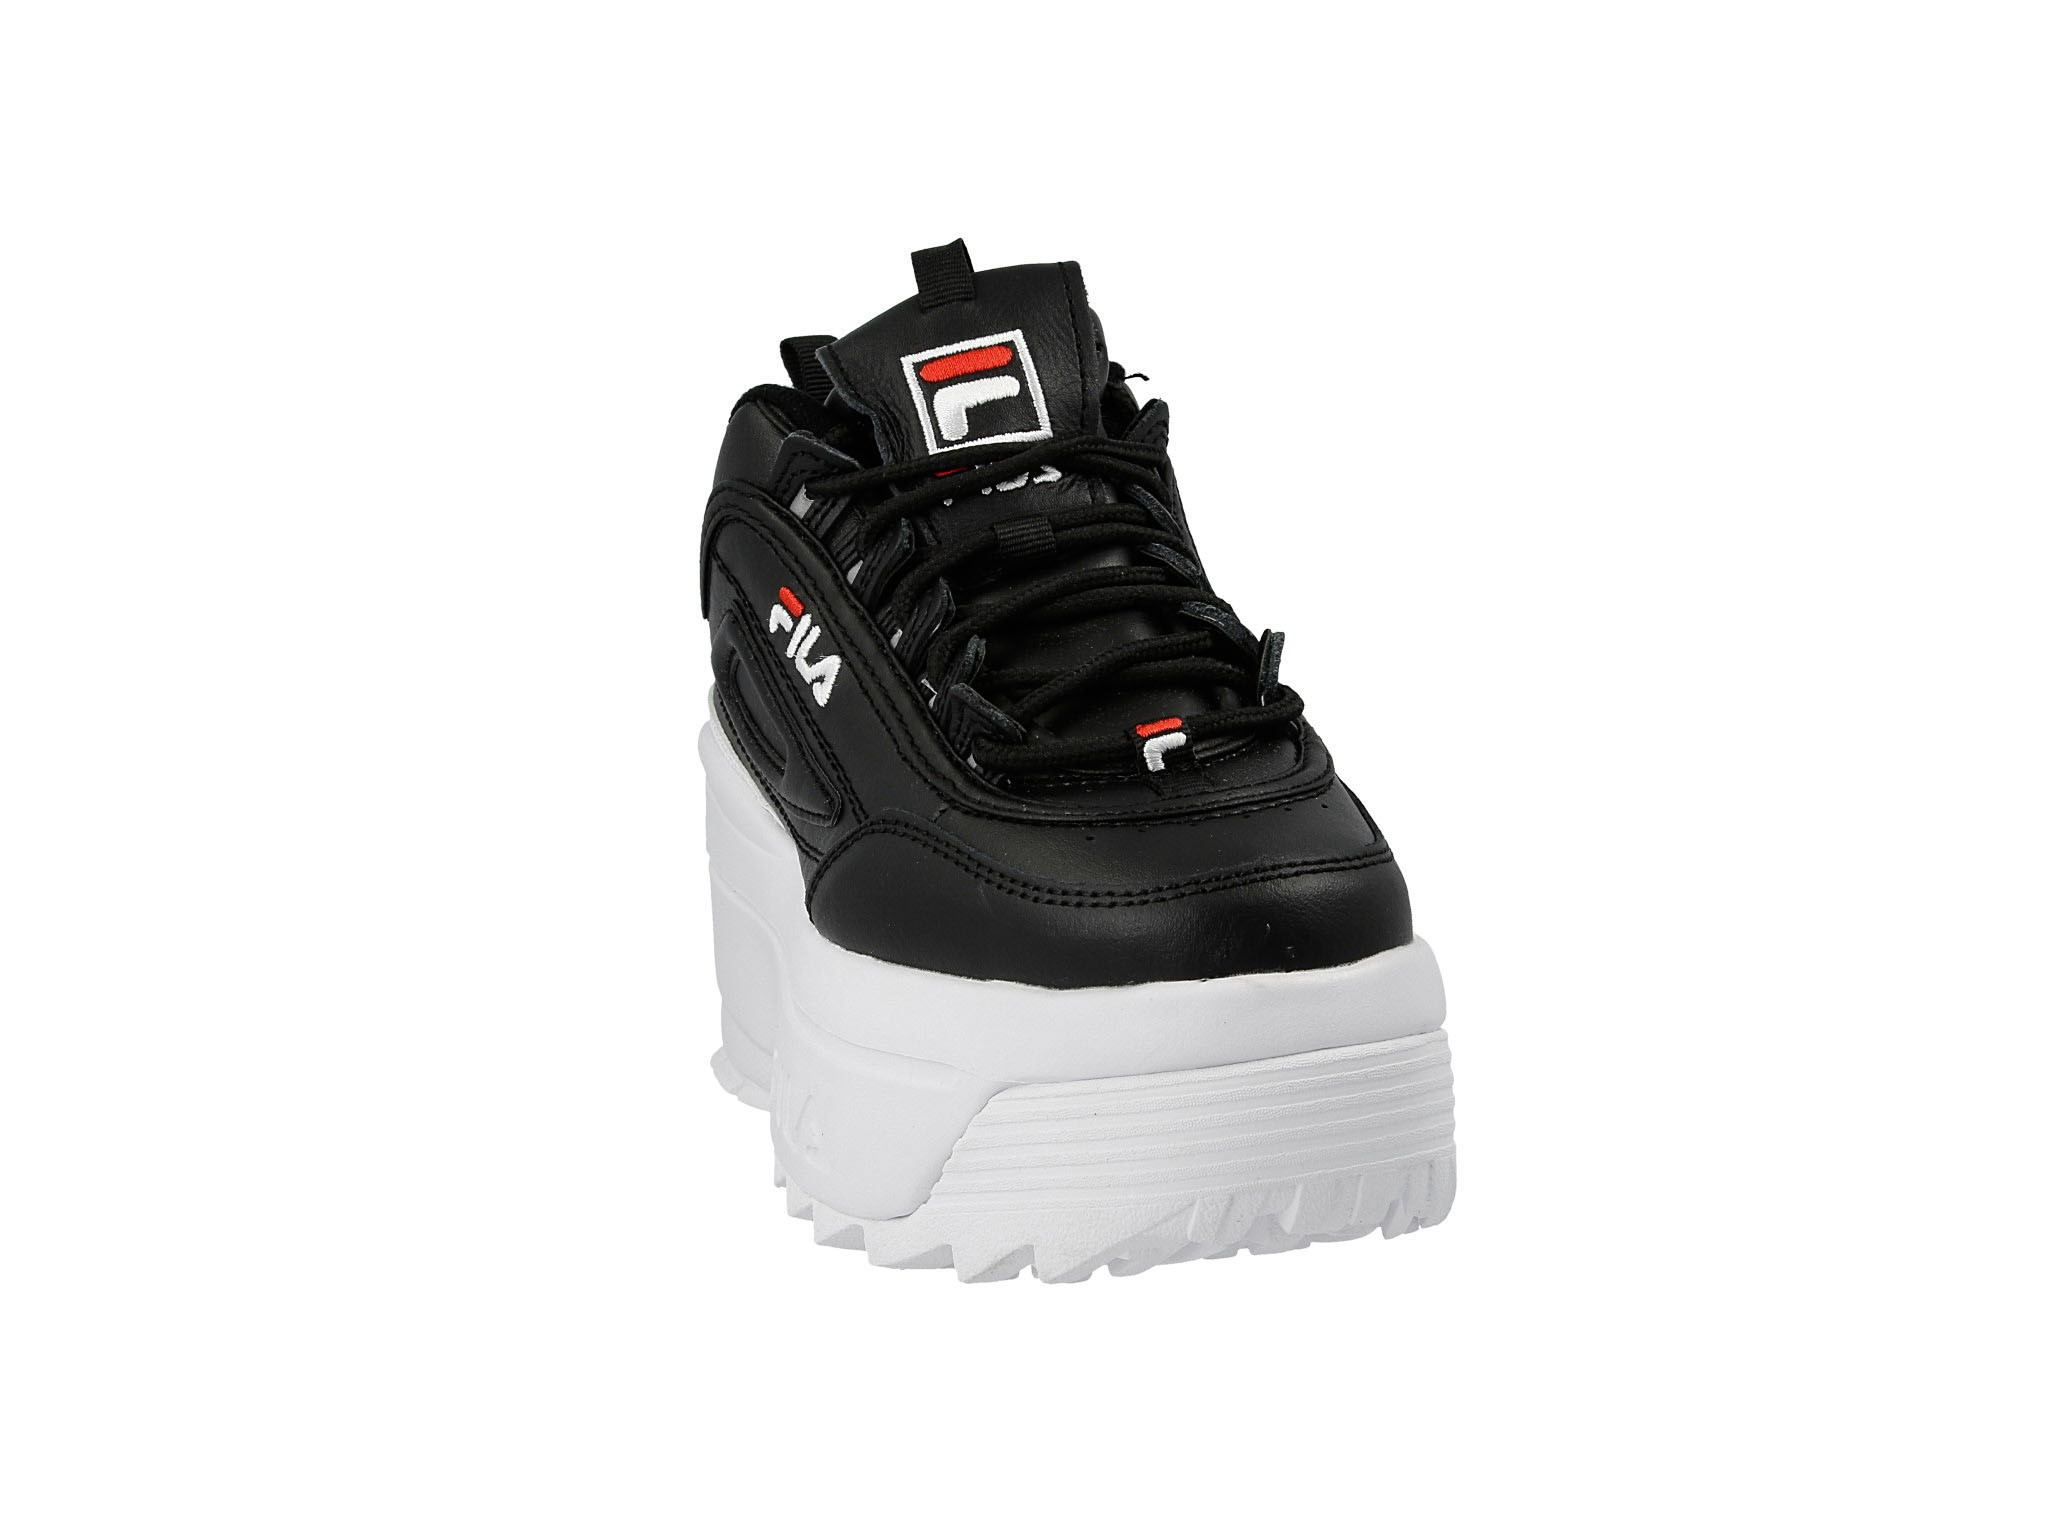 Sneakersy Disruptor II Wedge Wmn 5FM00704.014 BlackWhite Red